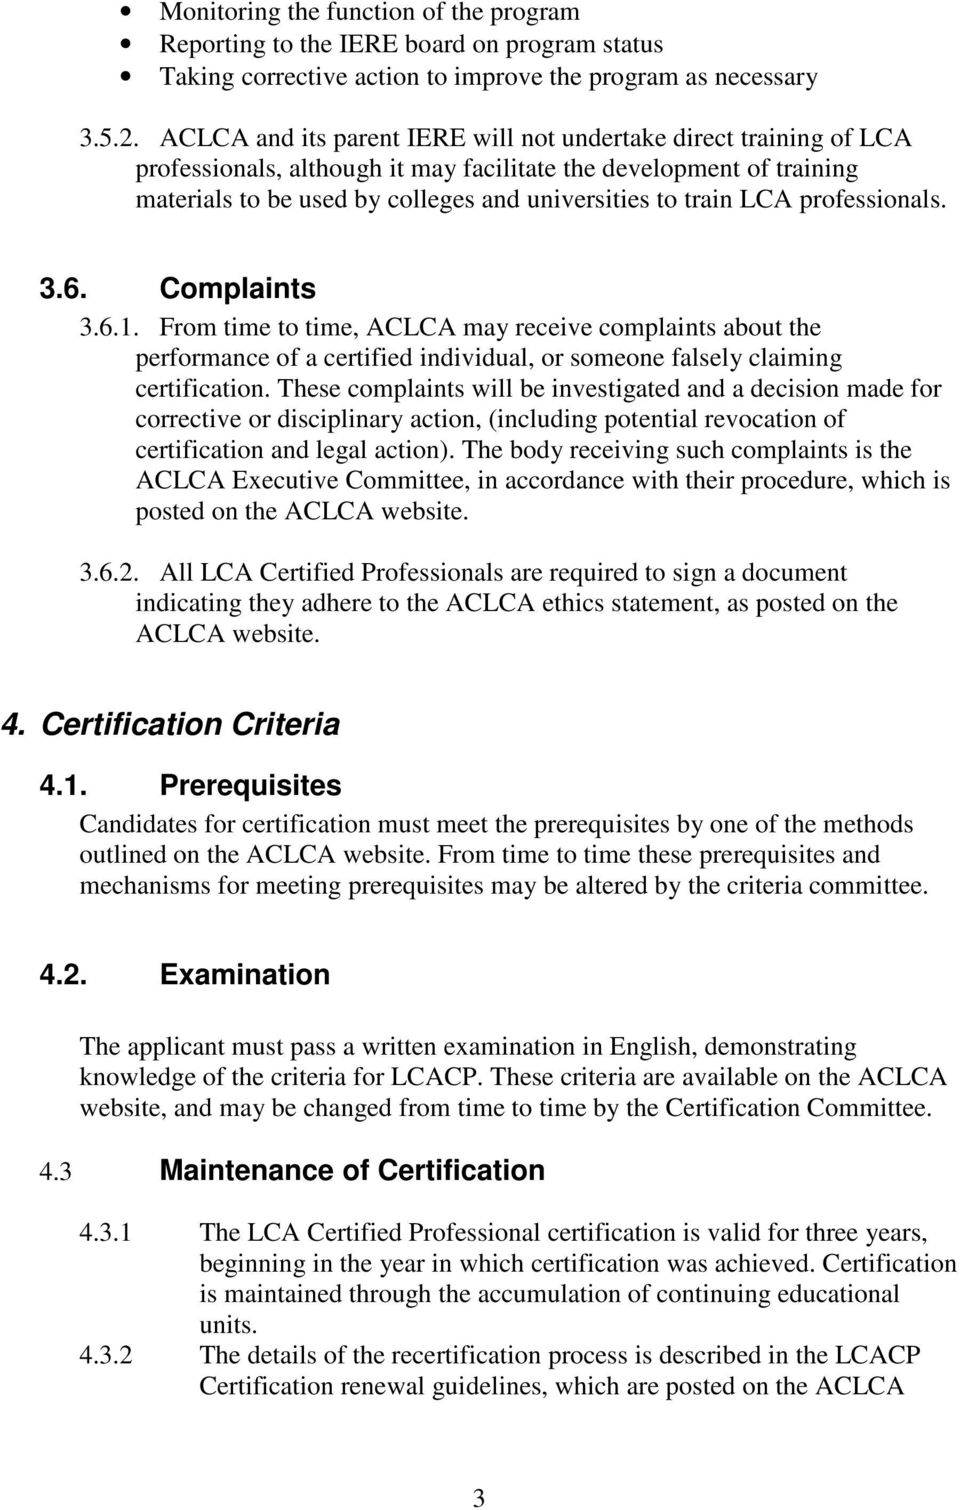 LCA professionals. 3.6. Complaints 3.6.1. From time to time, ACLCA may receive complaints about the performance of a certified individual, or someone falsely claiming certification.